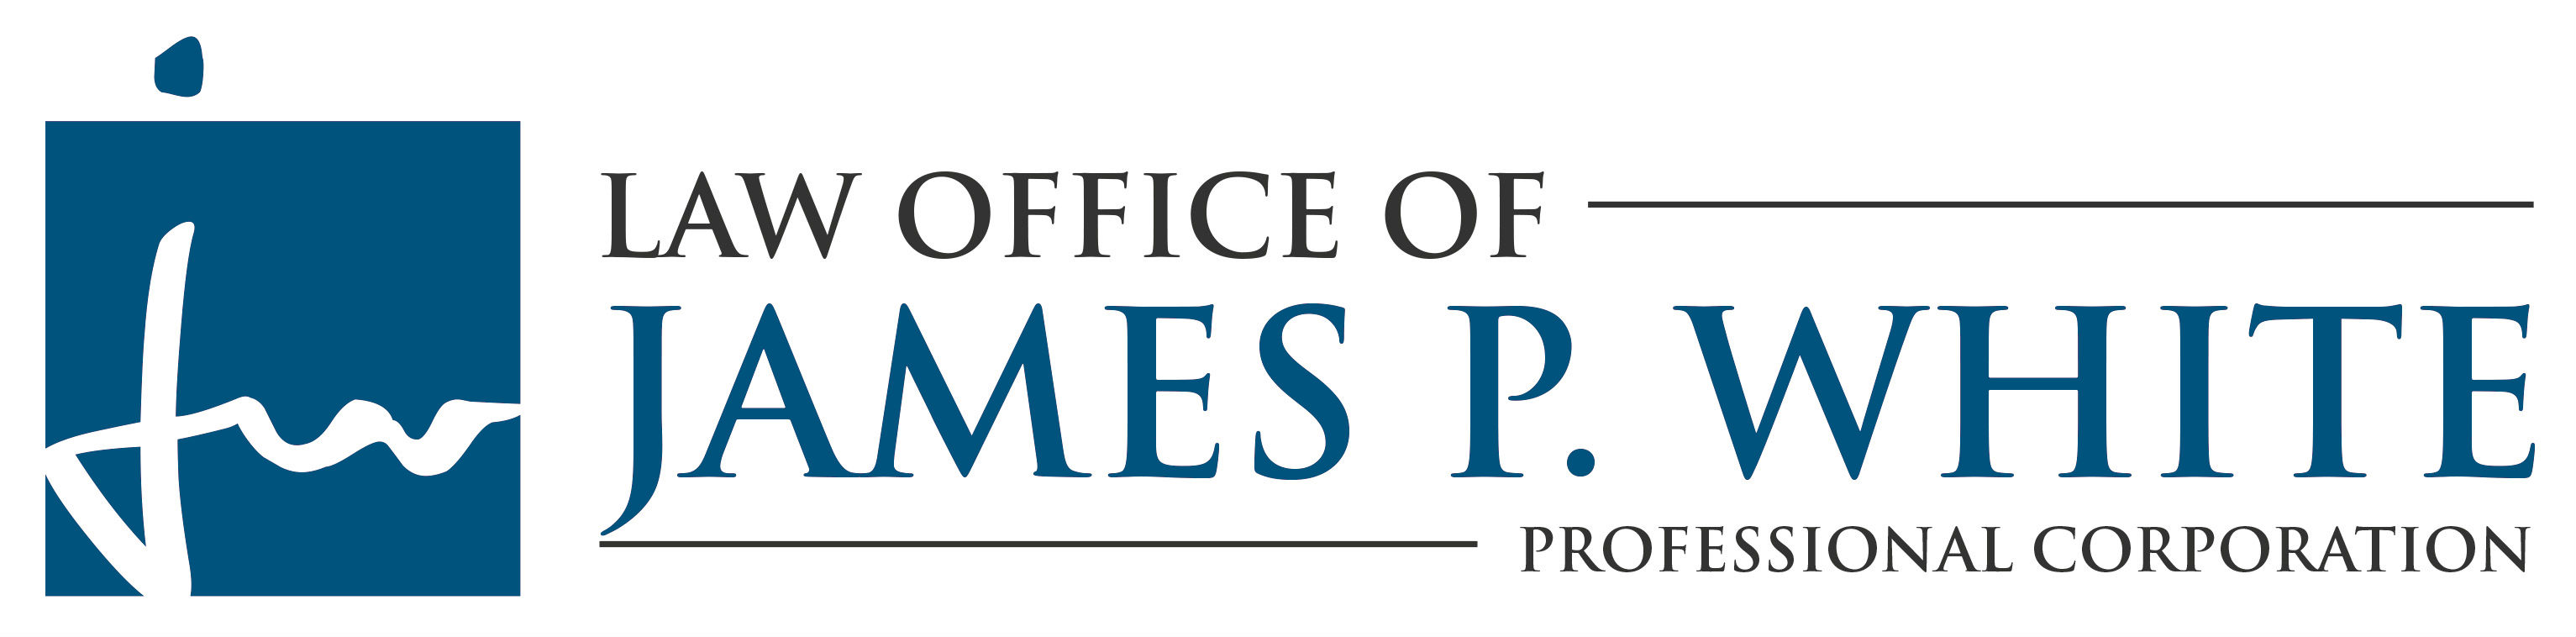 Law Office of James P. White